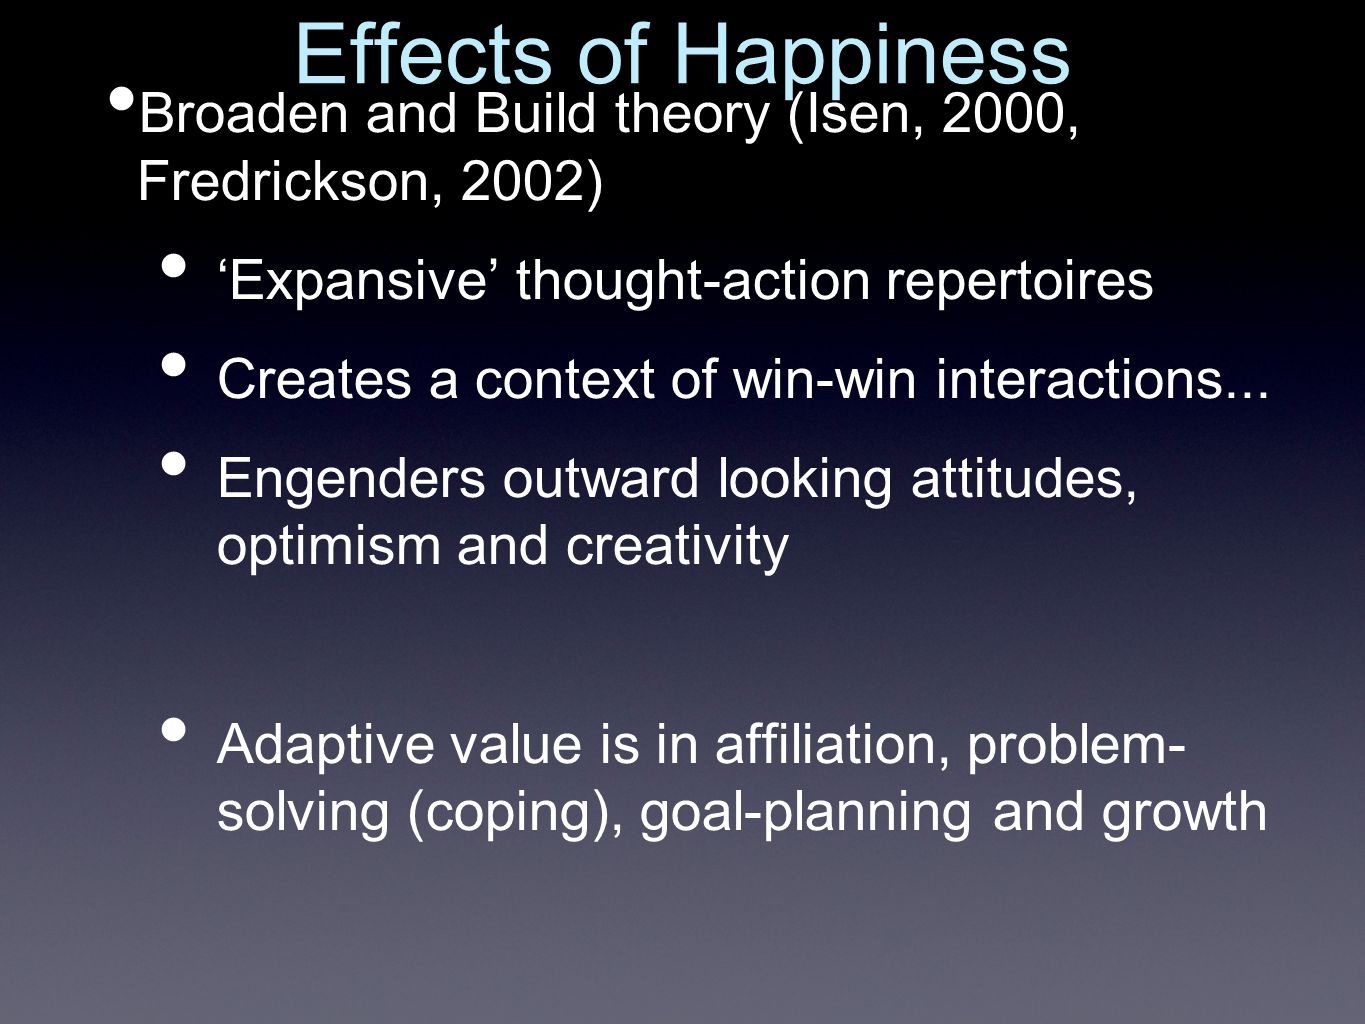 Broaden and Build theory (Isen, 2000, Fredrickson, 2002) 'Expansive' thought-action repertoires Creates a context of win-win interactions...